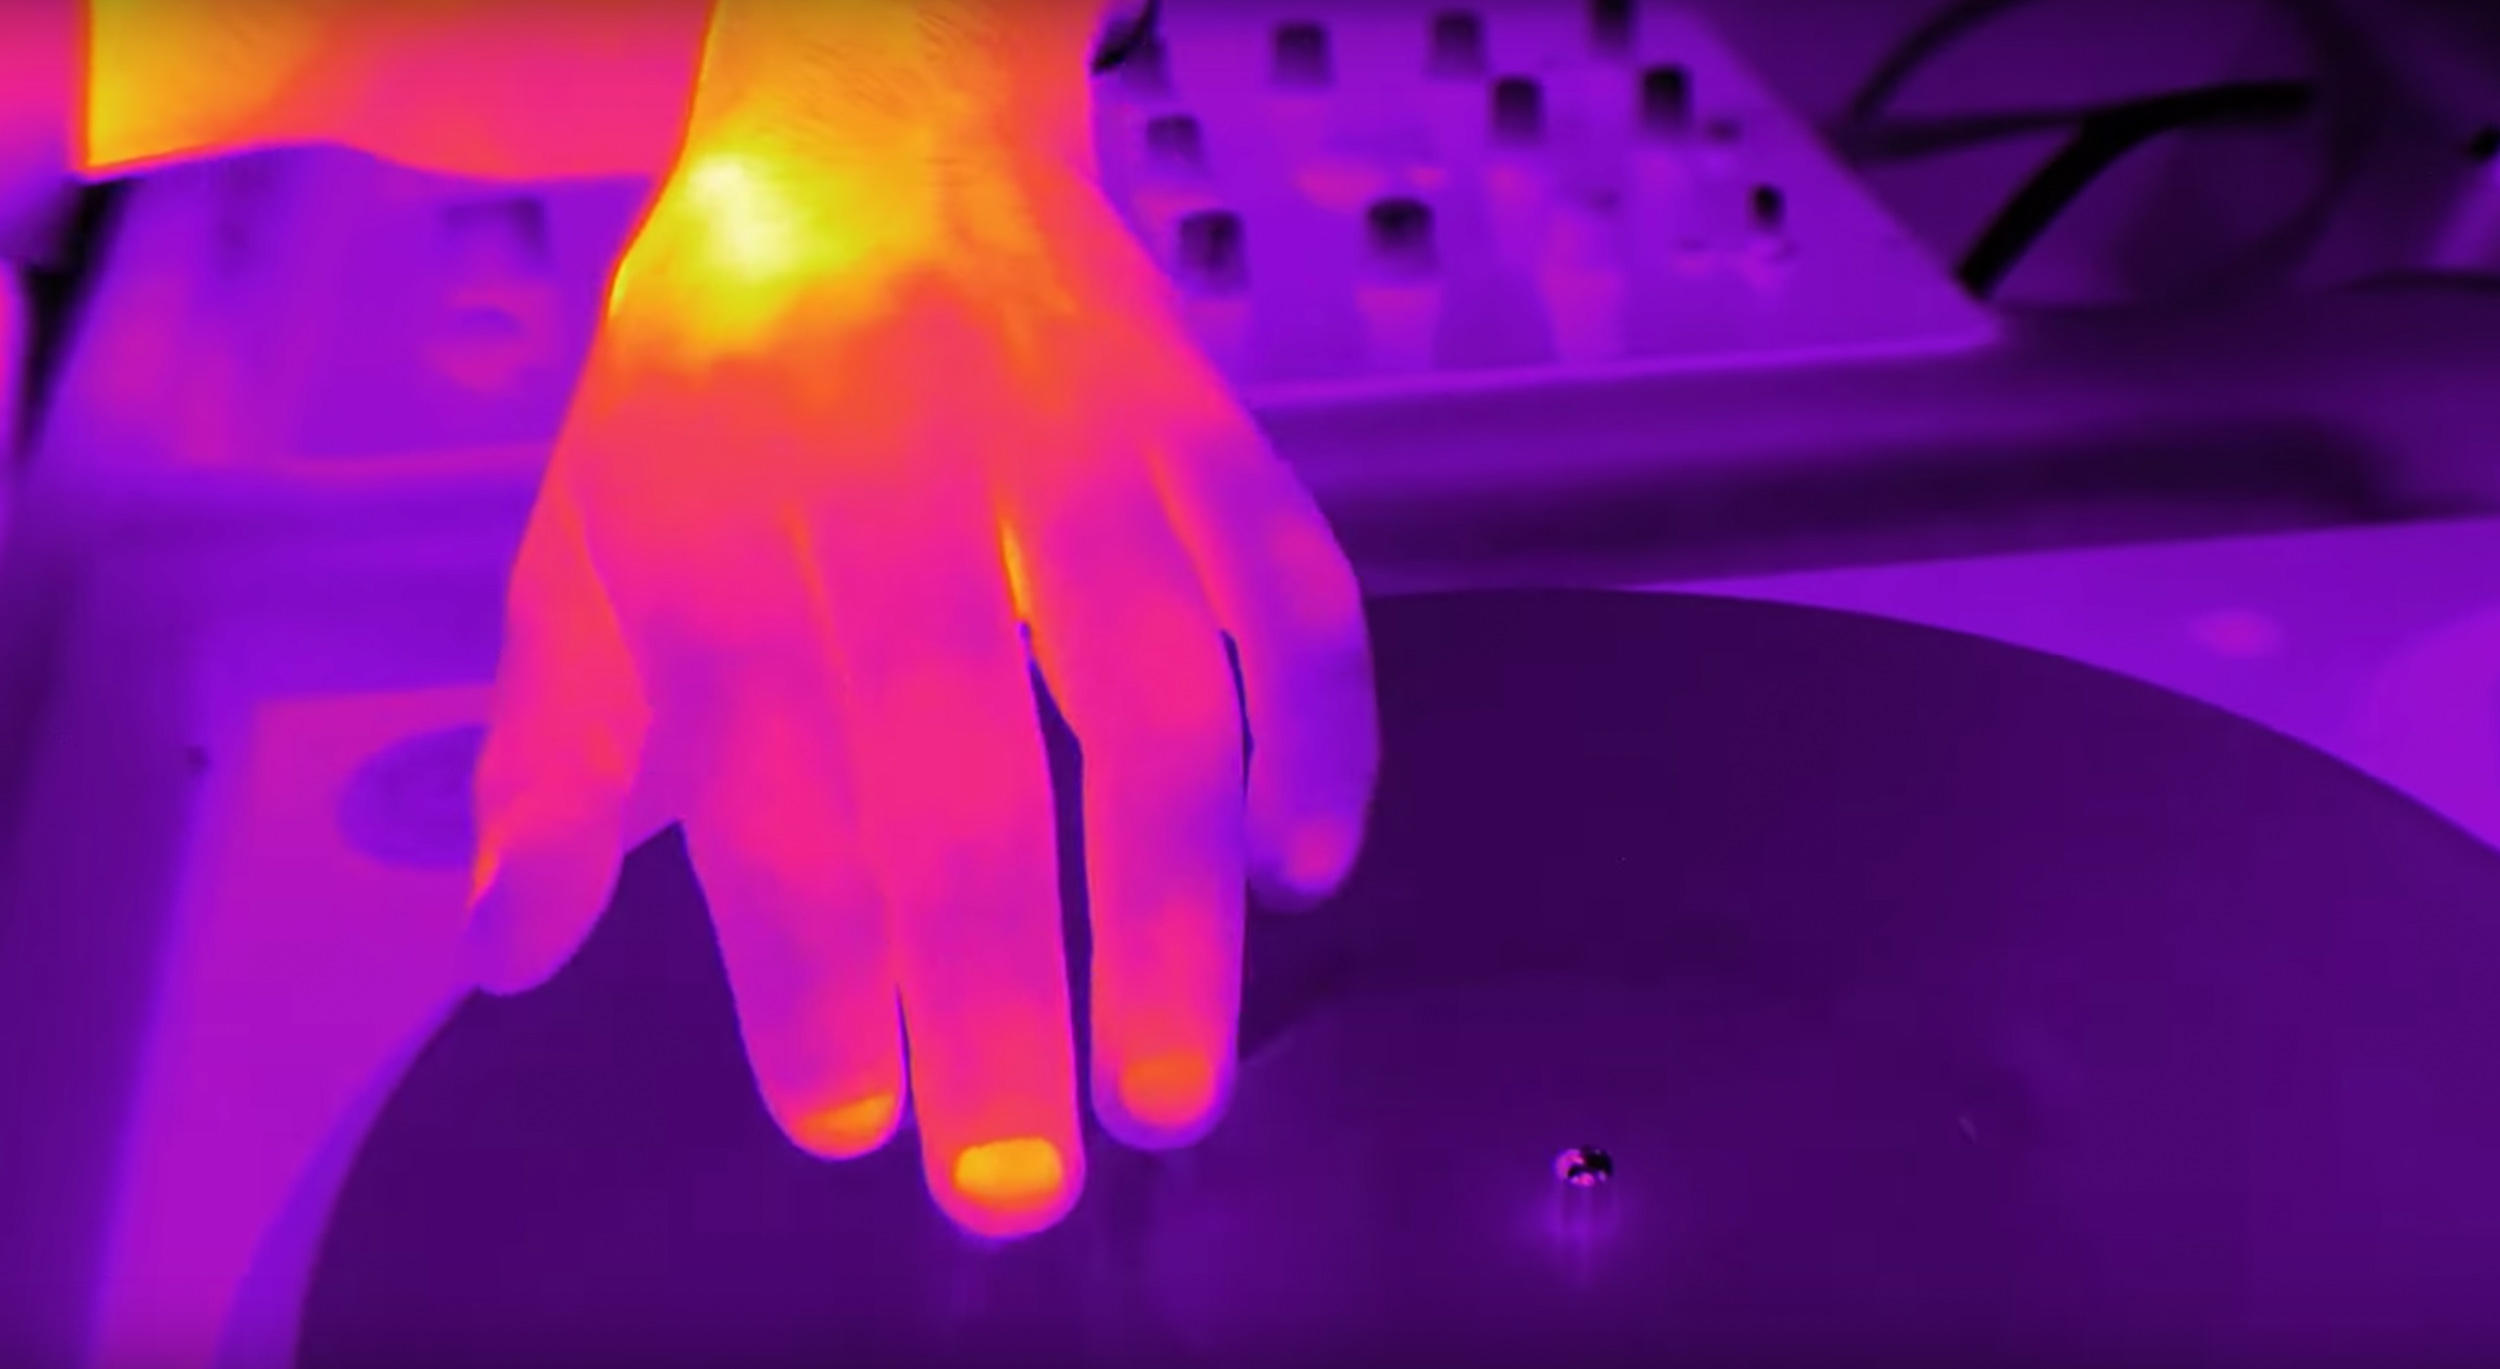 Case Study - Metering With Heat: Shooting My Love with a Thermal Camera